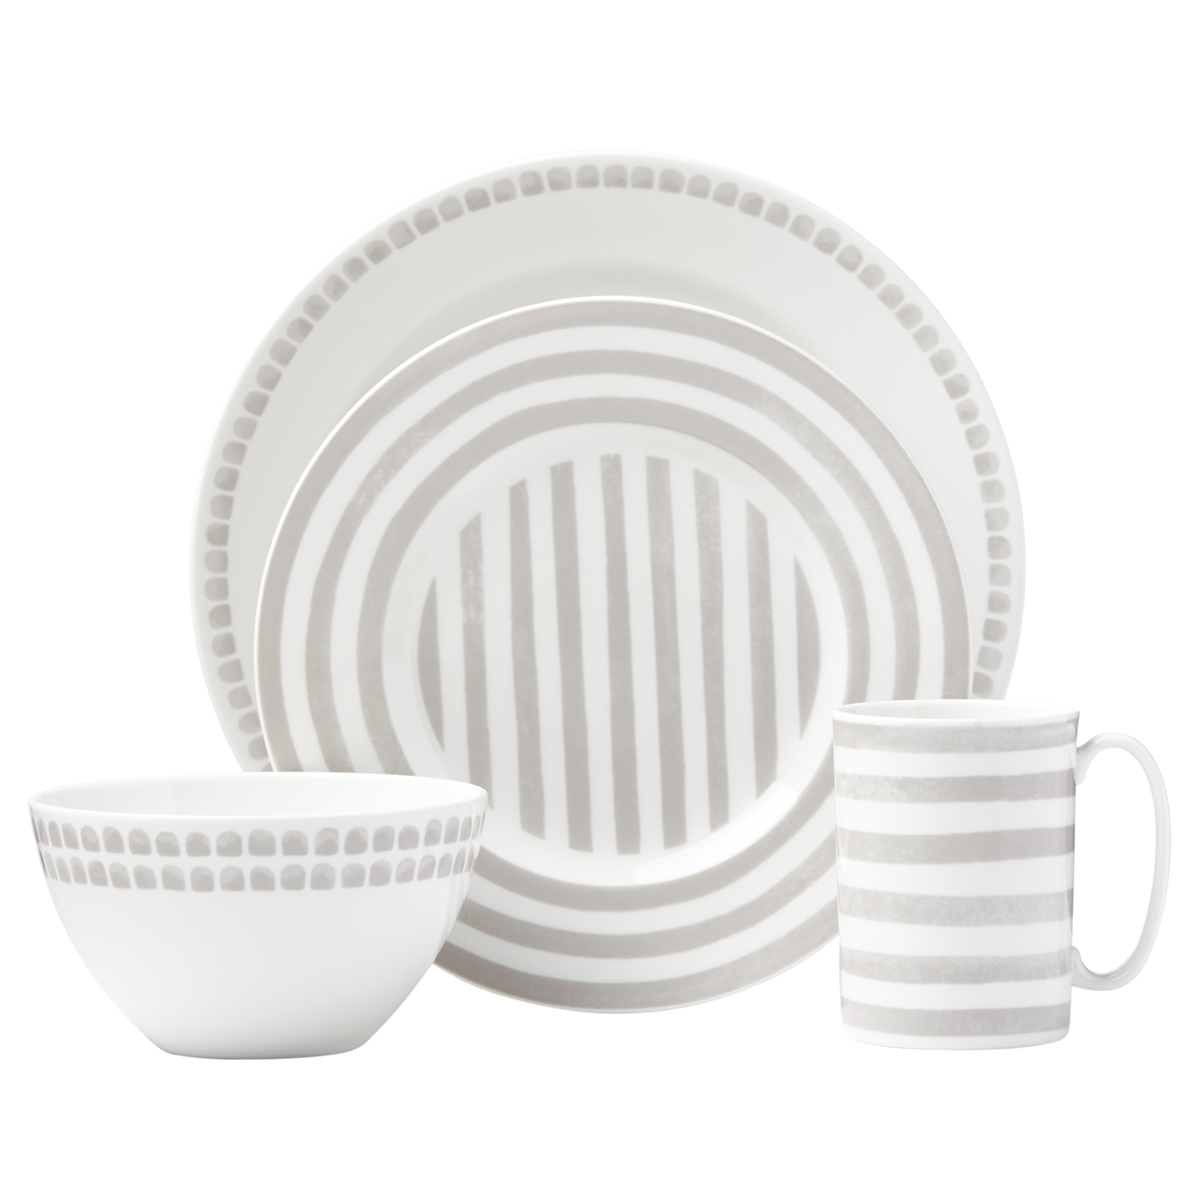 Kate Spade China by Lenox, Charlotte St North Grey 4 Piece Place Setting